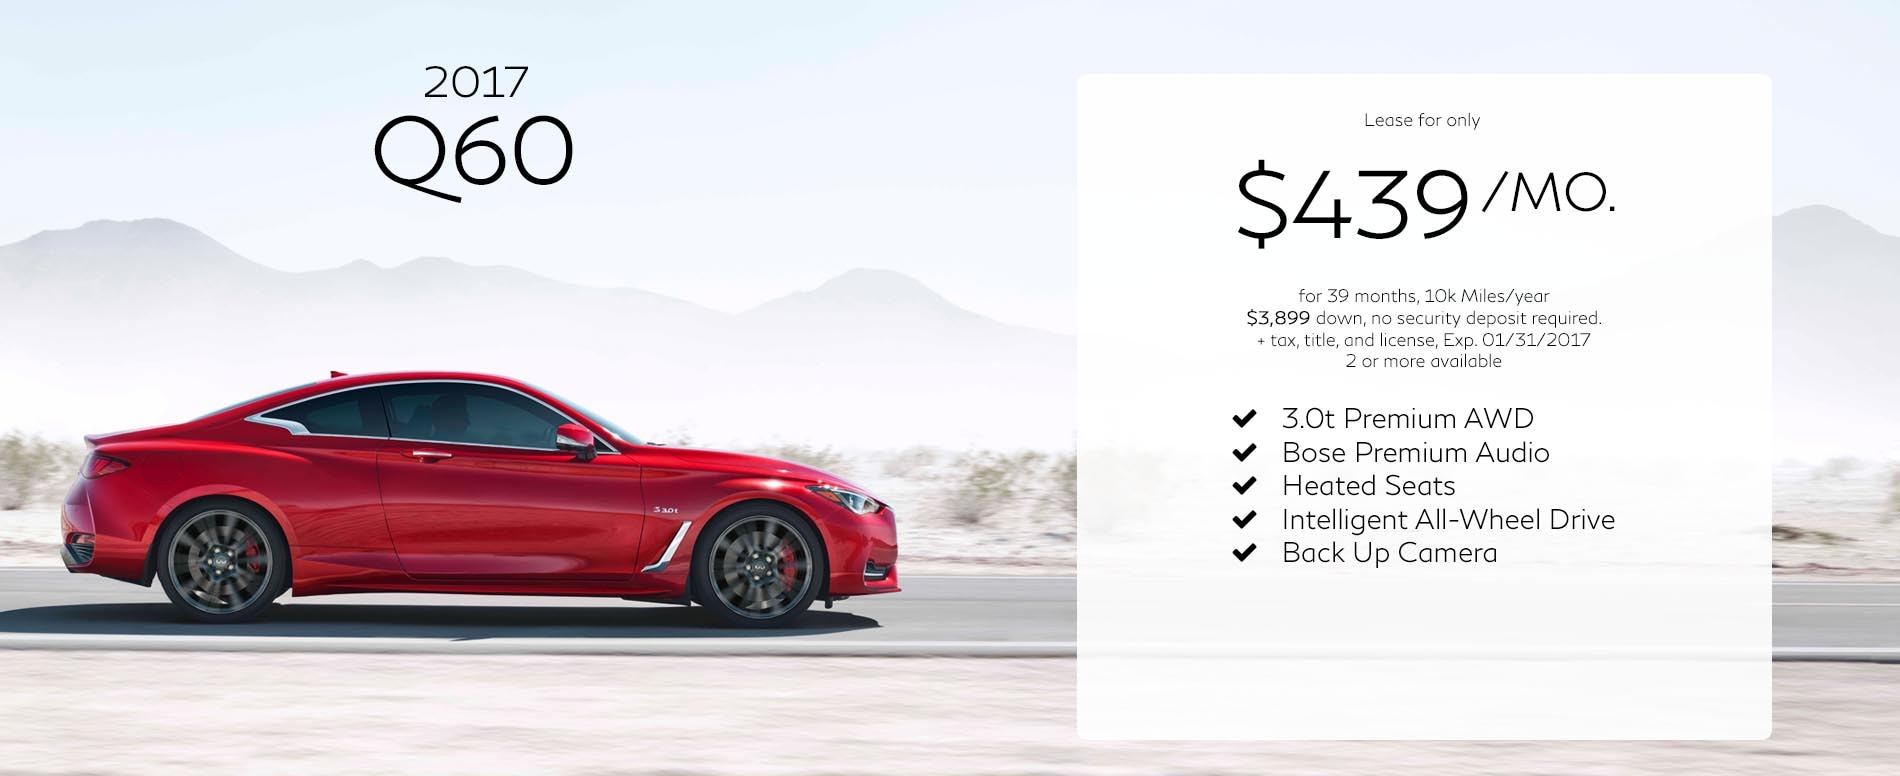 Lease a 2017 Infiniti Q60 Coupe for $439 per month with $3,899 due at signing